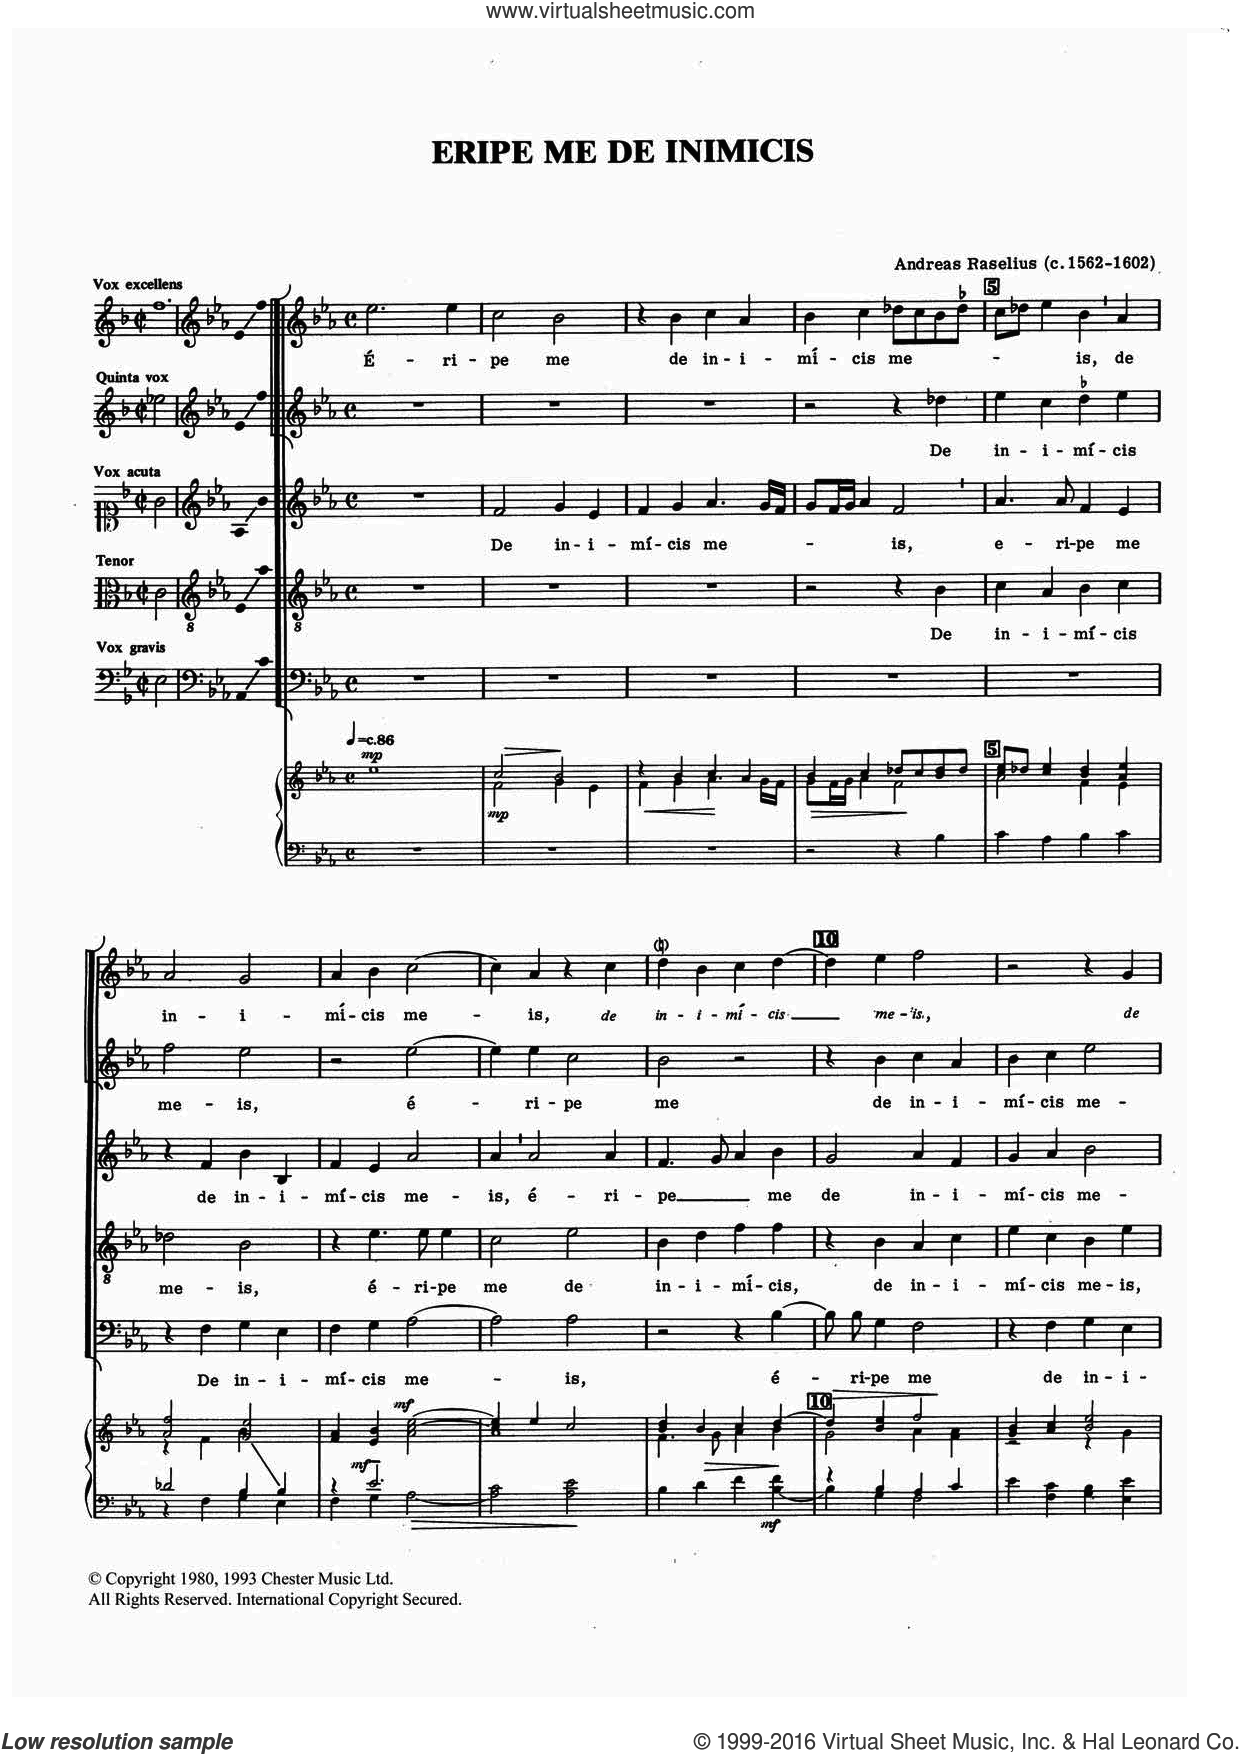 Eripe Me De Inimicis sheet music for voice, piano or guitar by Andreas Raselius, classical score, intermediate. Score Image Preview.